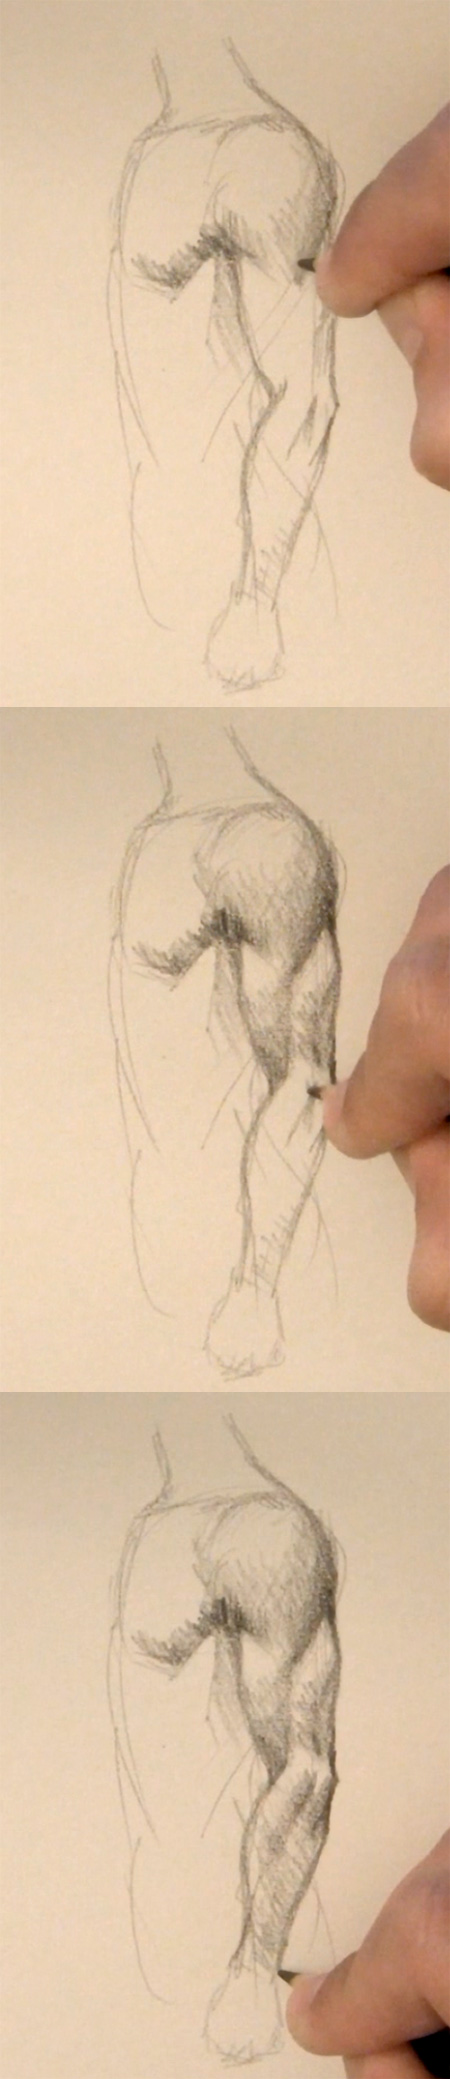 draw arm muscles side view step 2